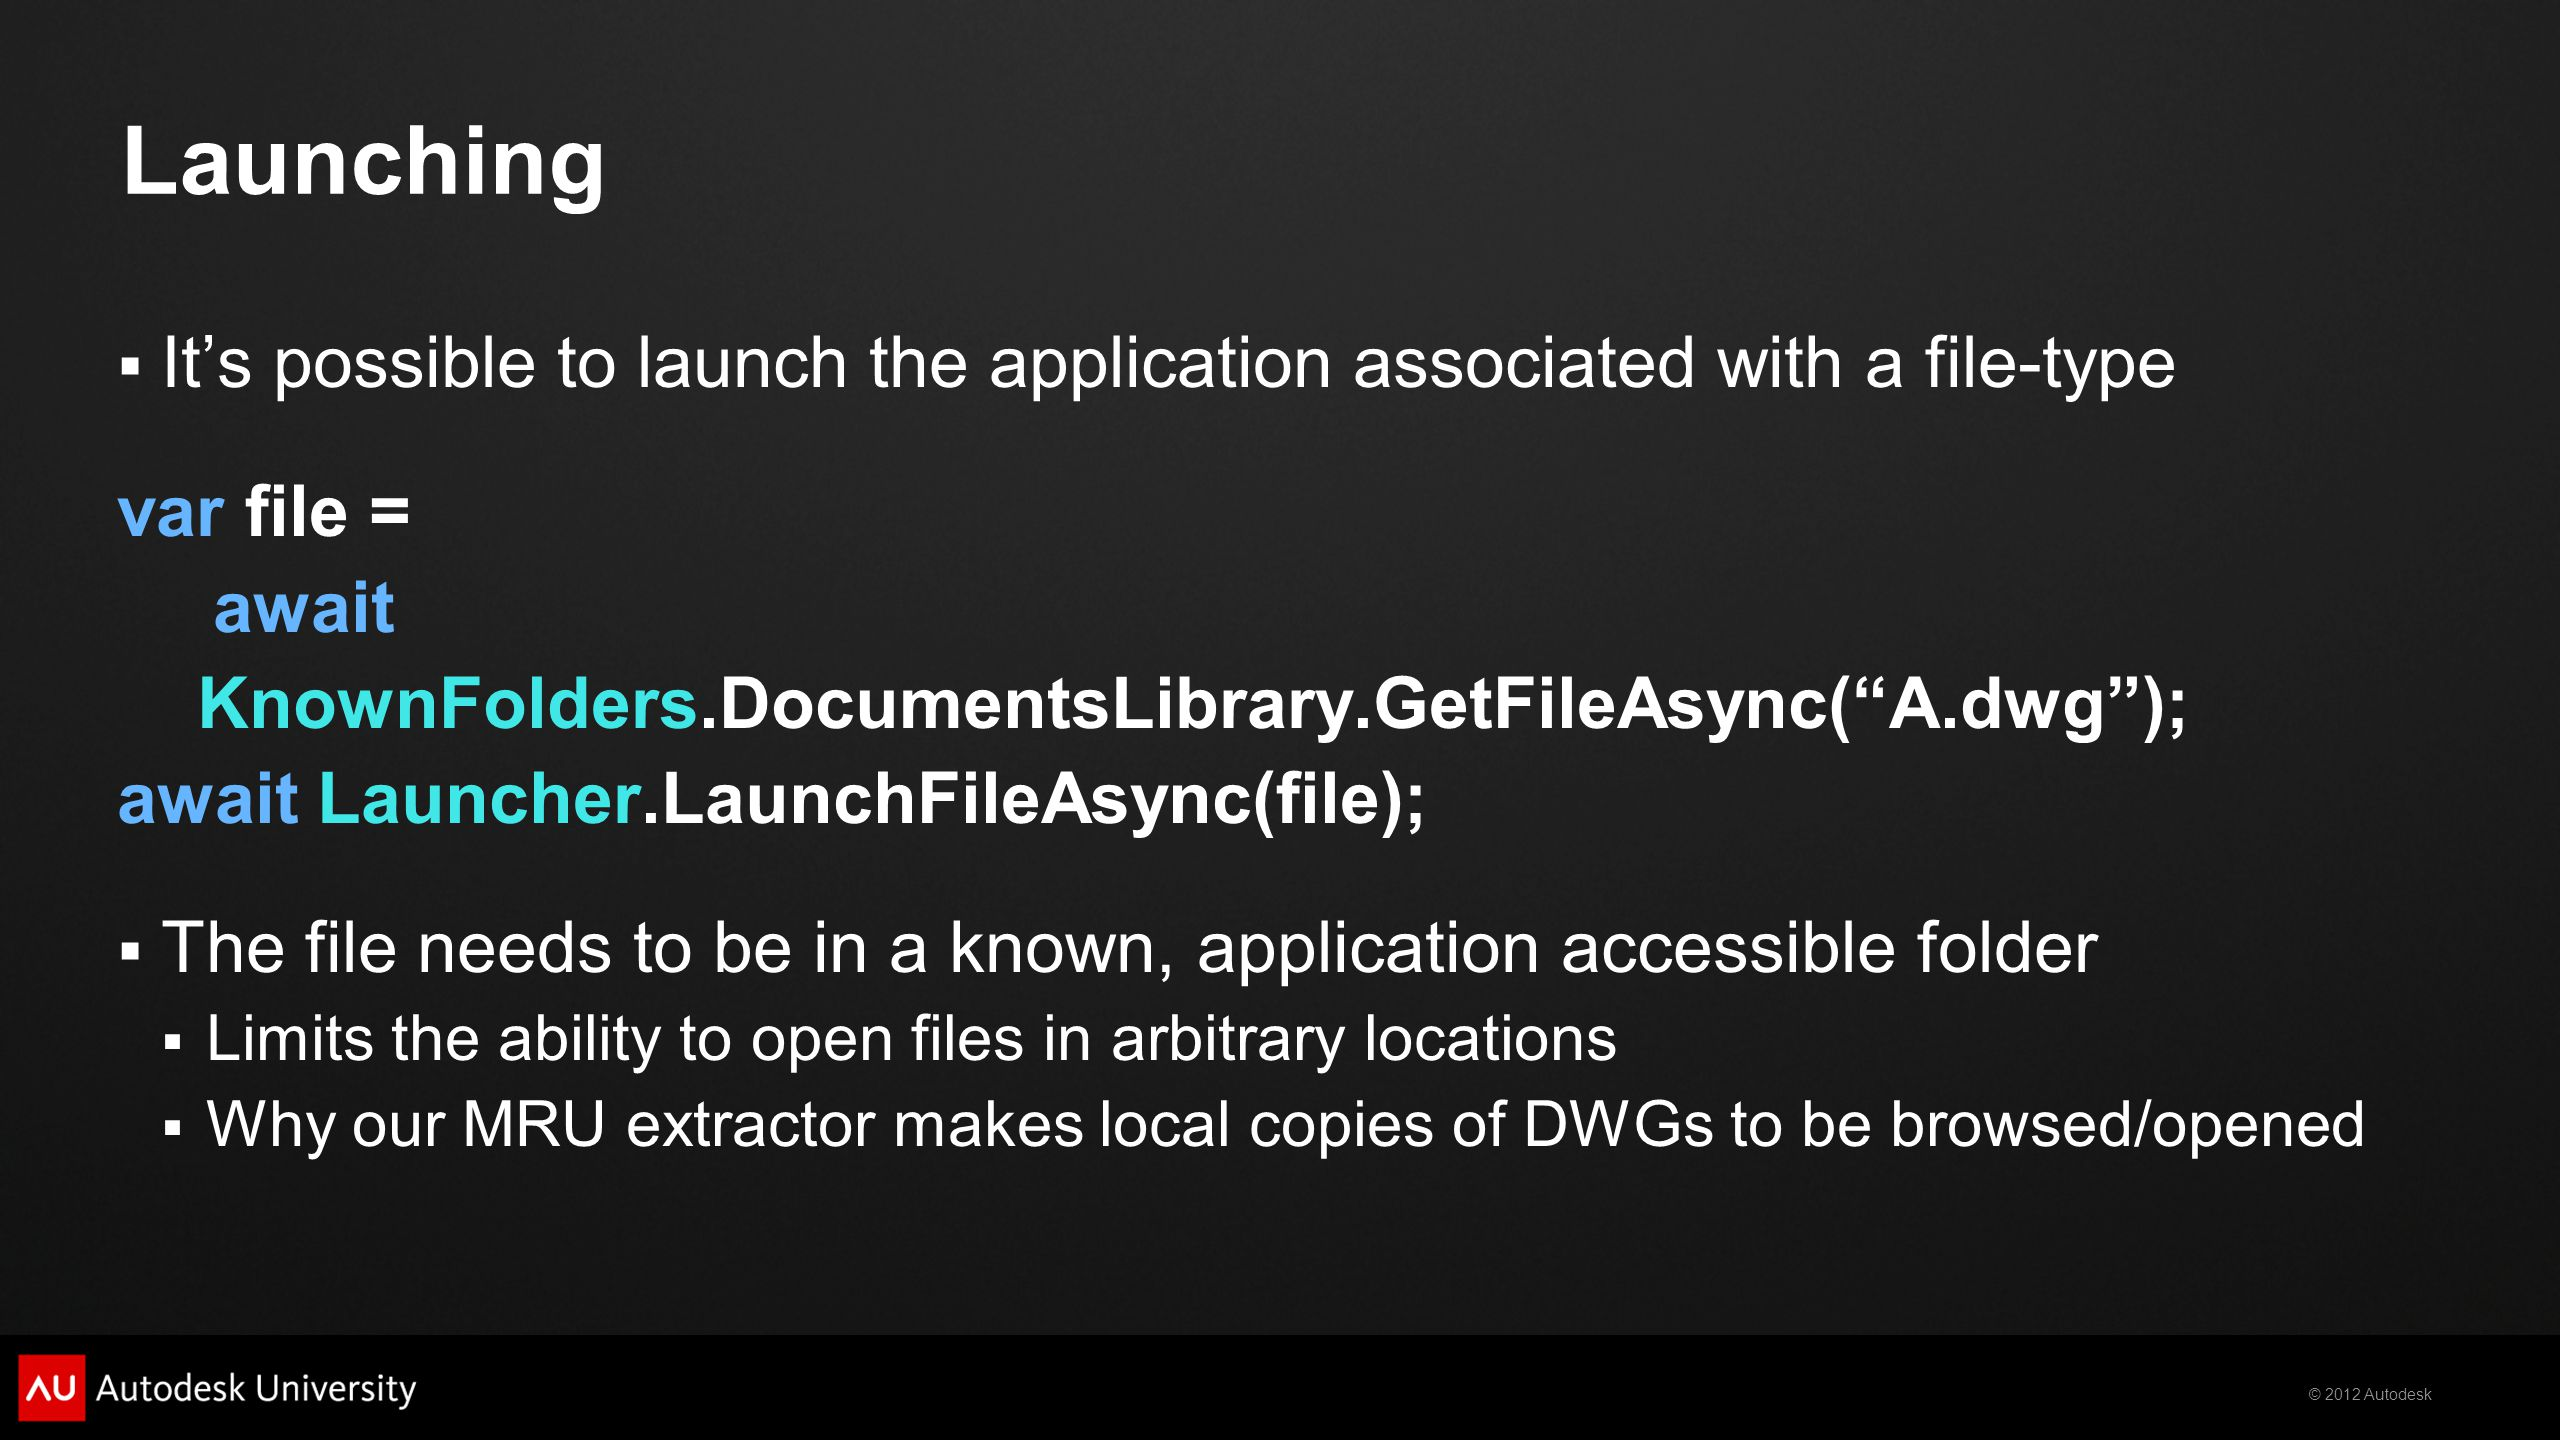 © 2012 Autodesk Launching Its possible to launch the application associated with a file-type var file = await KnownFolders.DocumentsLibrary.GetFileAsync(A.dwg); await Launcher.LaunchFileAsync(file); The file needs to be in a known, application accessible folder Limits the ability to open files in arbitrary locations Why our MRU extractor makes local copies of DWGs to be browsed/opened